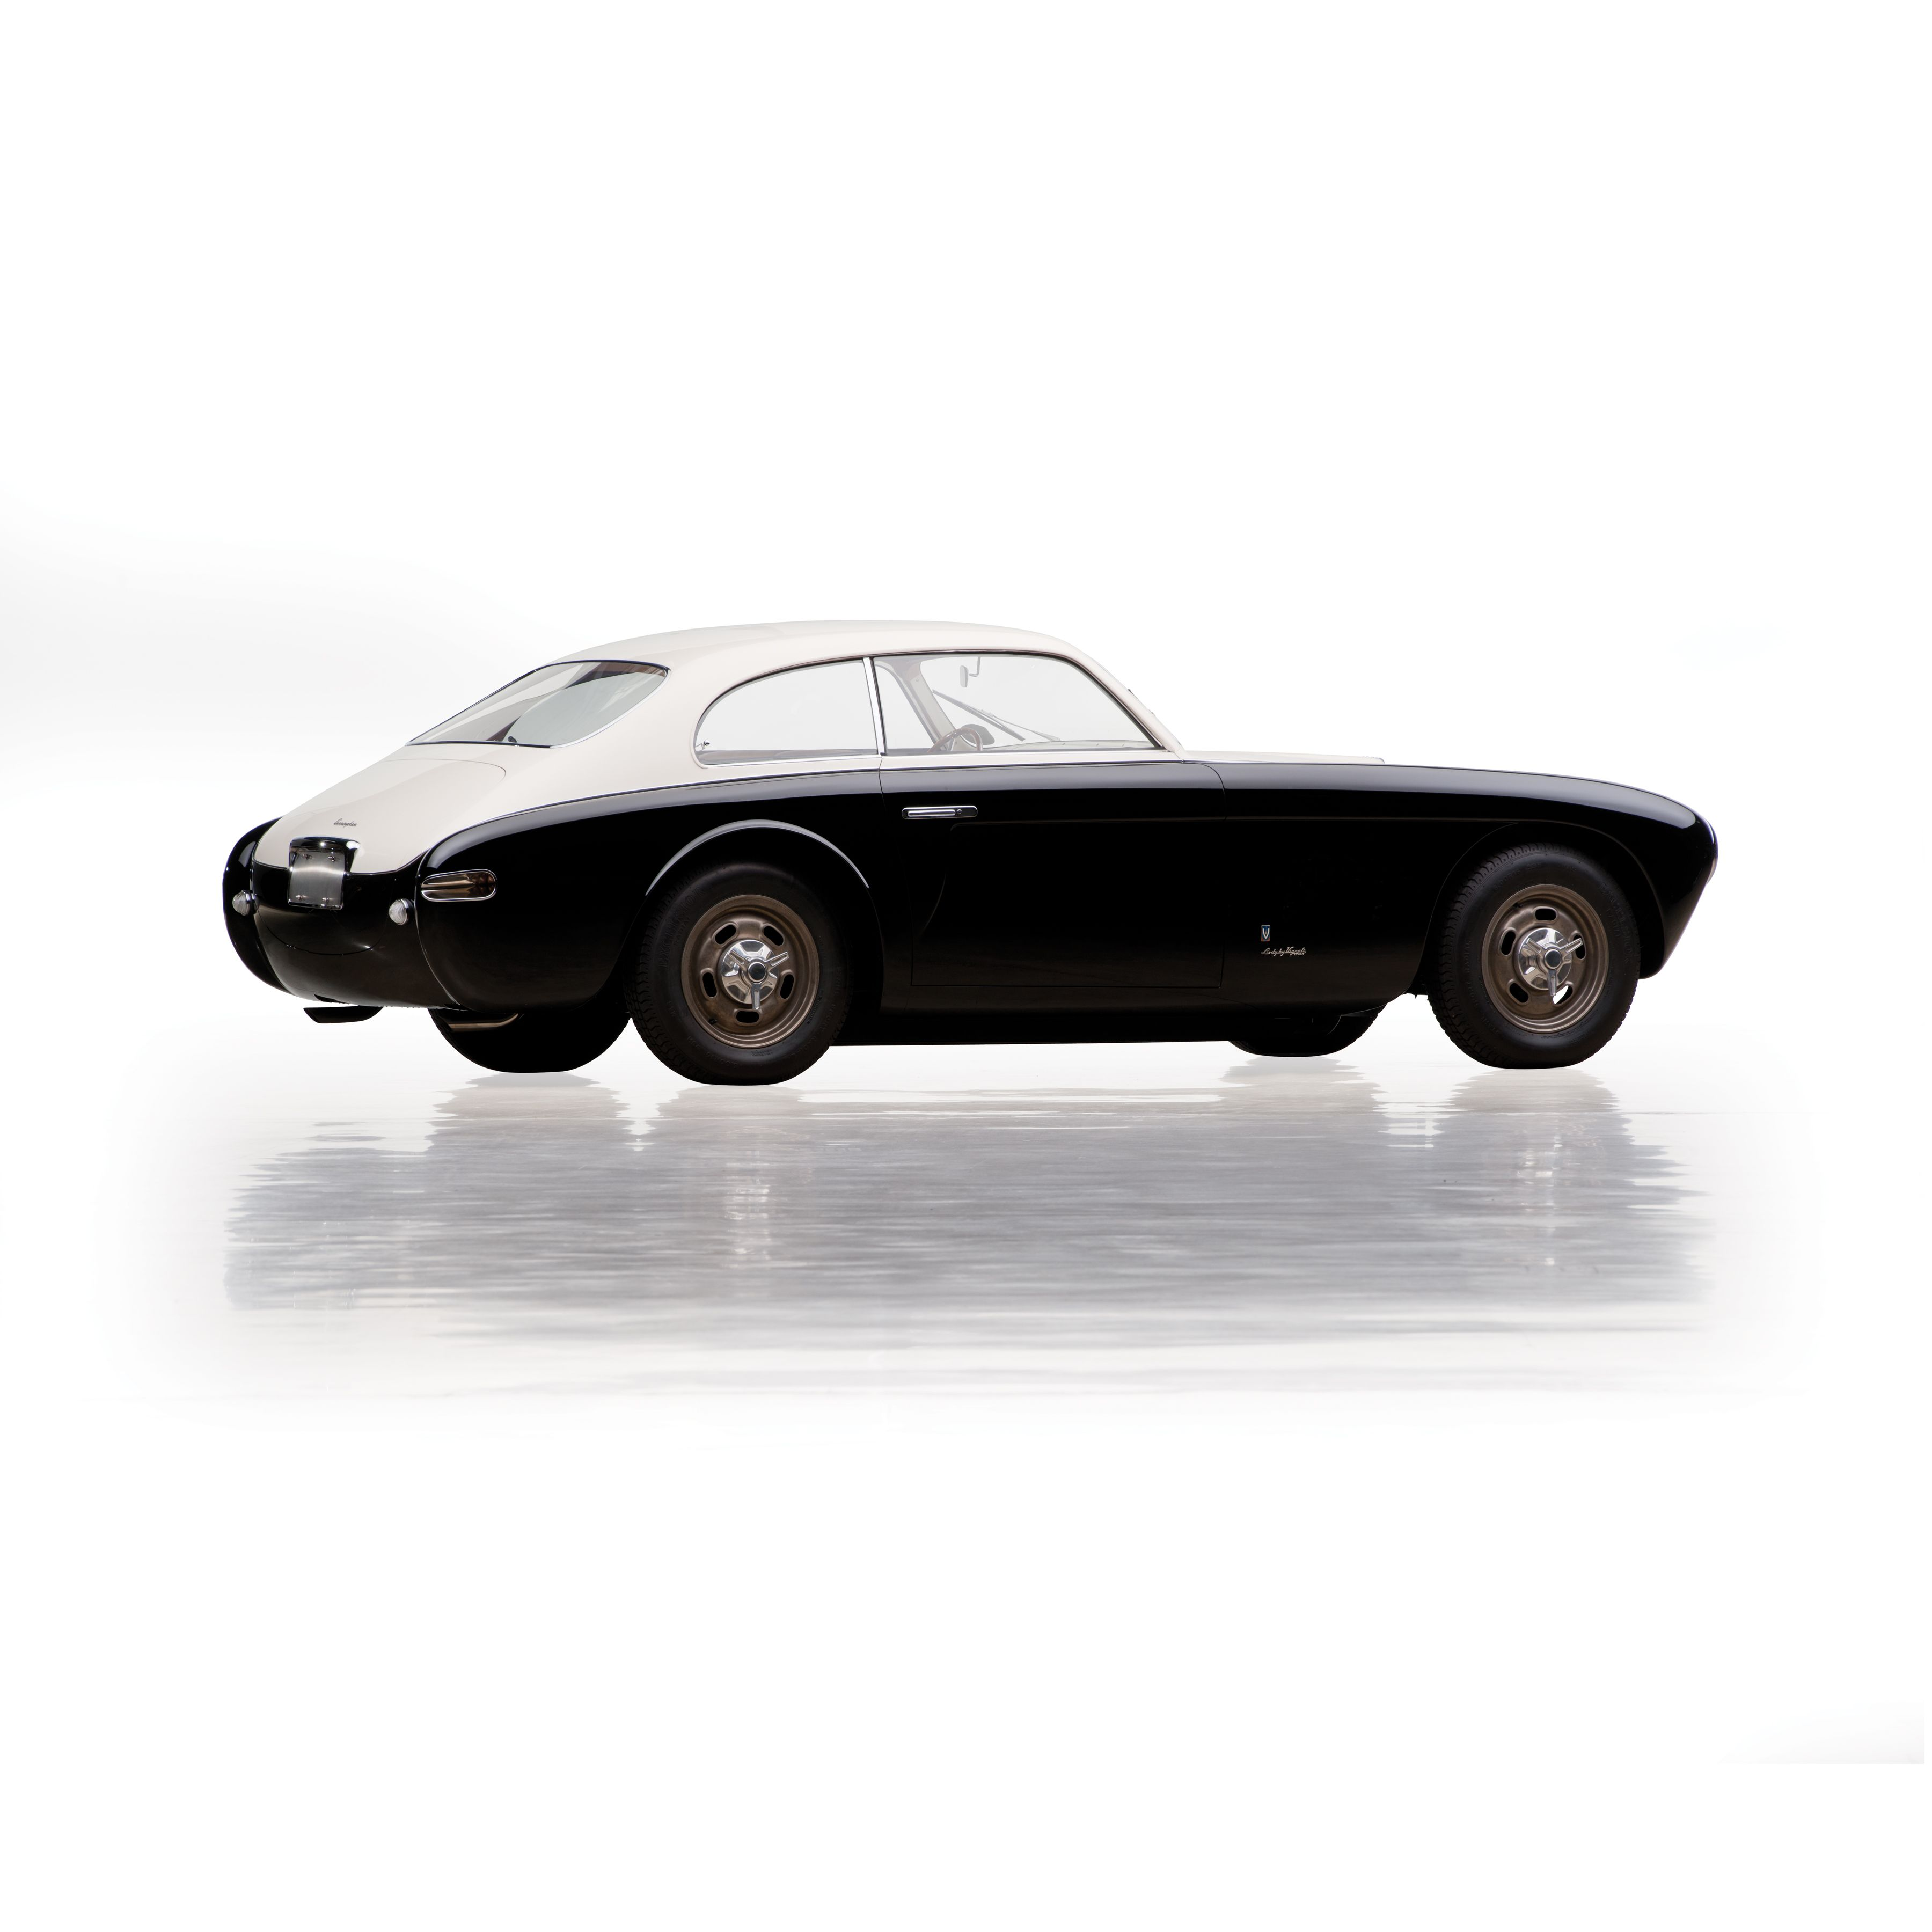 Andrews Collection scales down: Because classic cars need to be ...